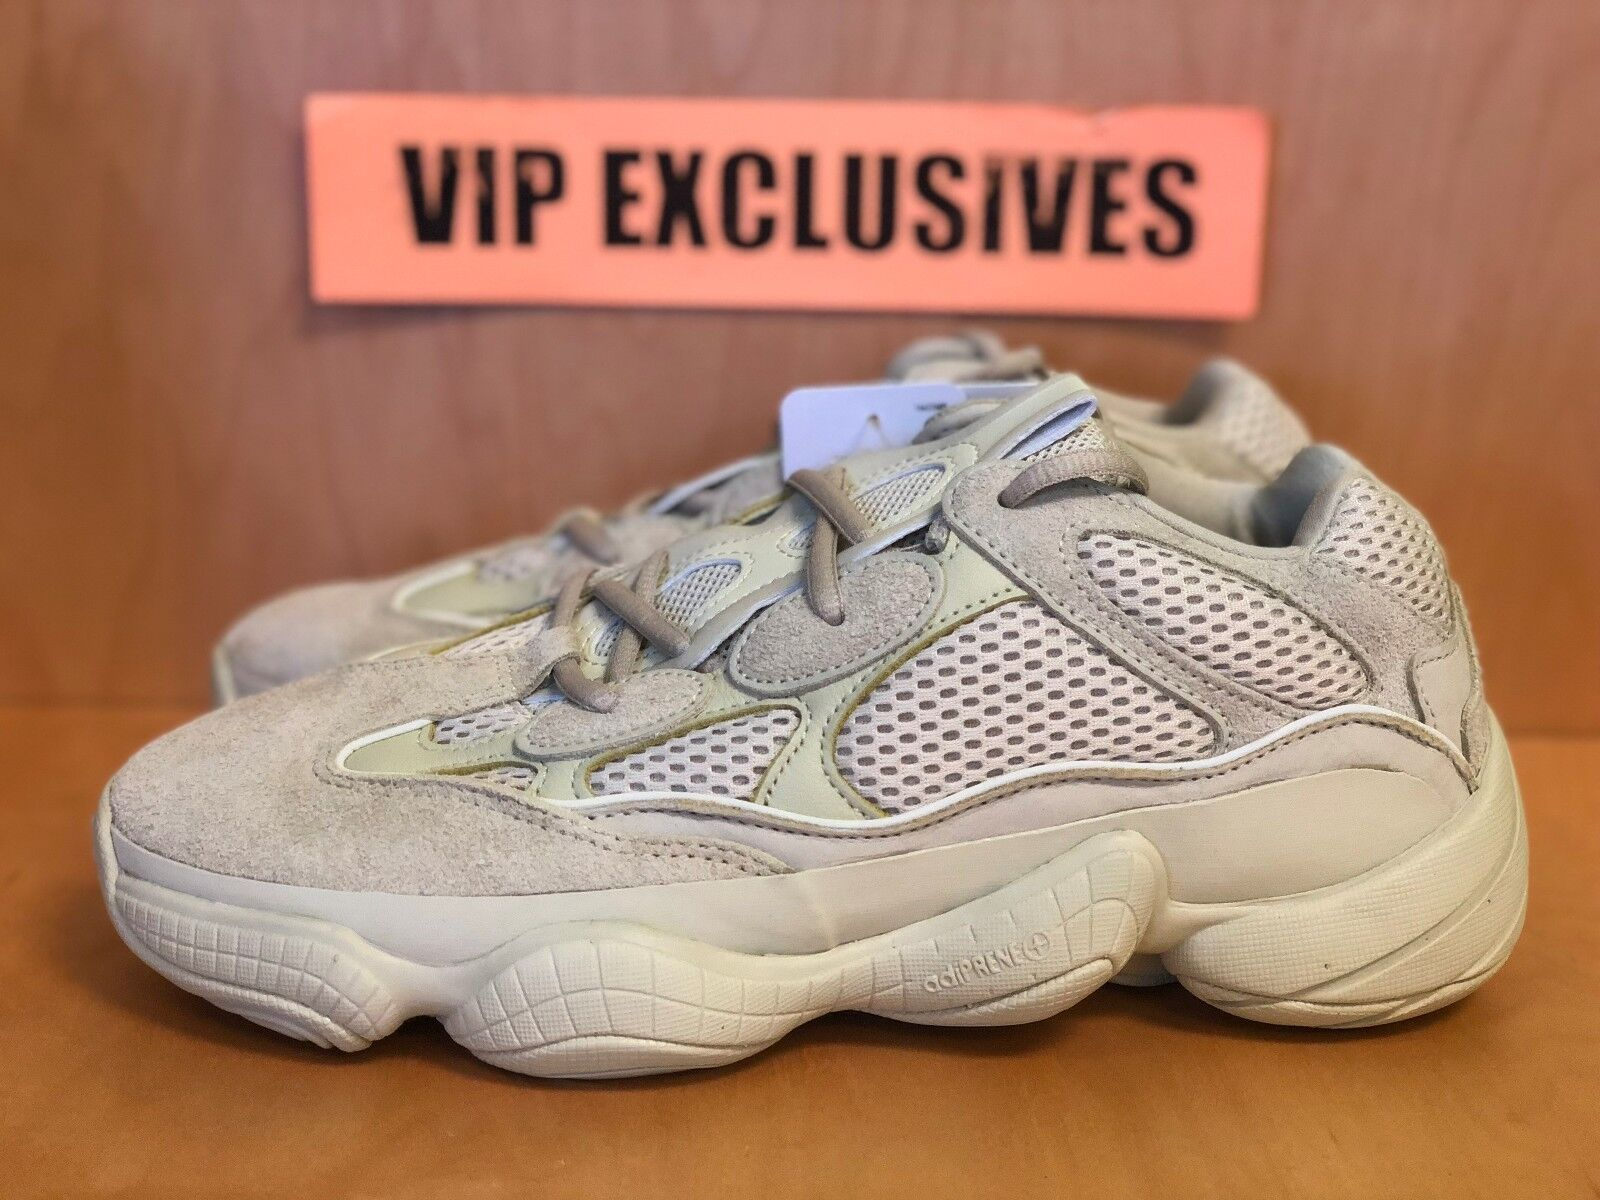 c95e8472db4 ... Adidas Yeezy 500 Super Yellow Moon Supermoon DB2966 100% Authentic фото  ...